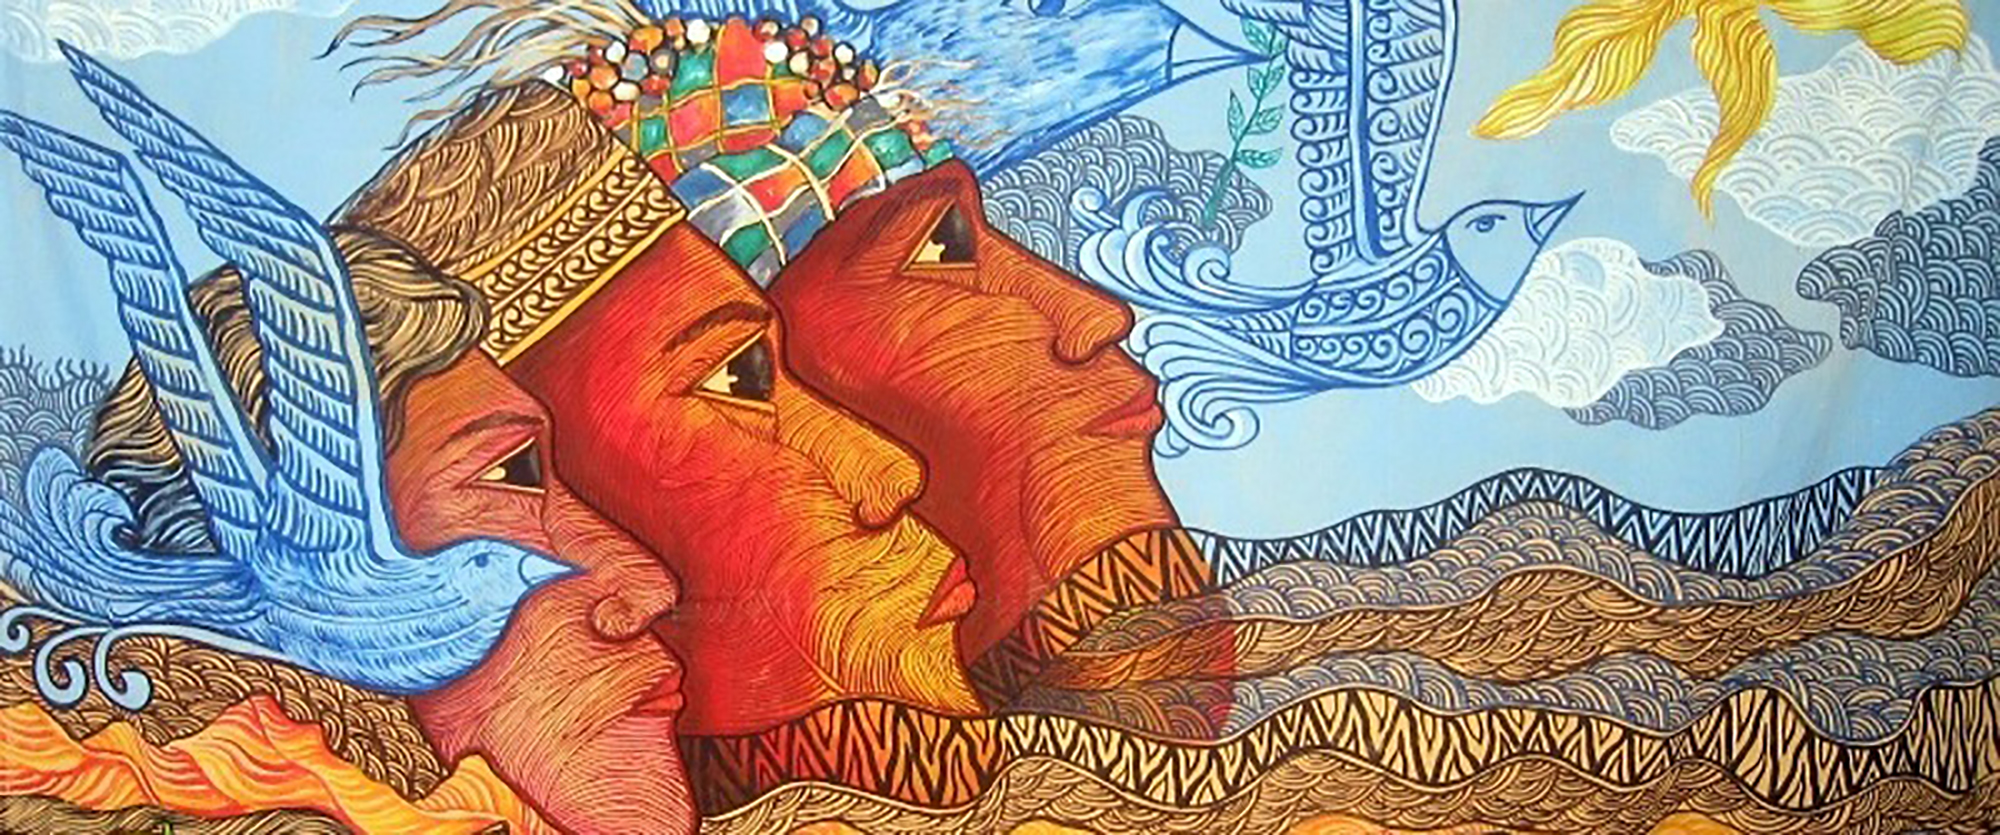 Painting of three faces of the tripartite people of Mindanao looking at the sun